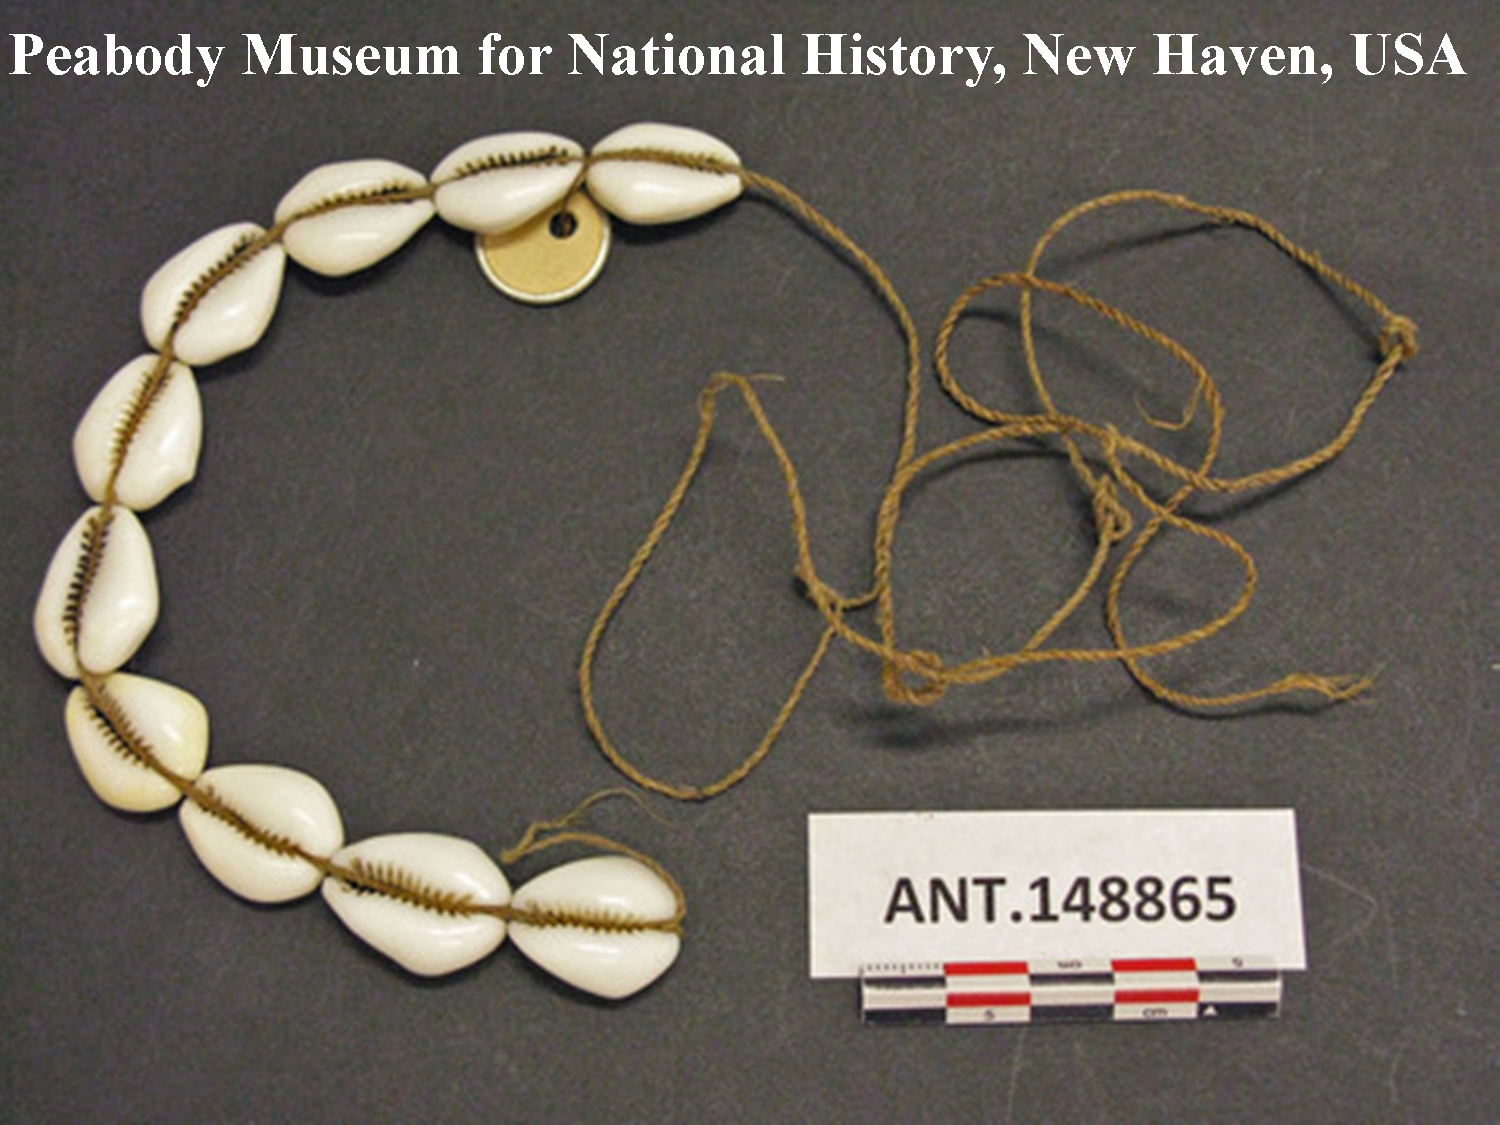 """Abb. 5: """"tuani mege"""", von den Weißen eingeführte Kauris von geringem Wert. Beschreibung: 10 cowries strung on inner bark string, used as shell money """"tuani mege"""". All are recently made pieces of shell introduced by white man. Low value. Length 7 ¾ in. Southern Kamu Valley, Kapauku, Netherlands New Guinea."""